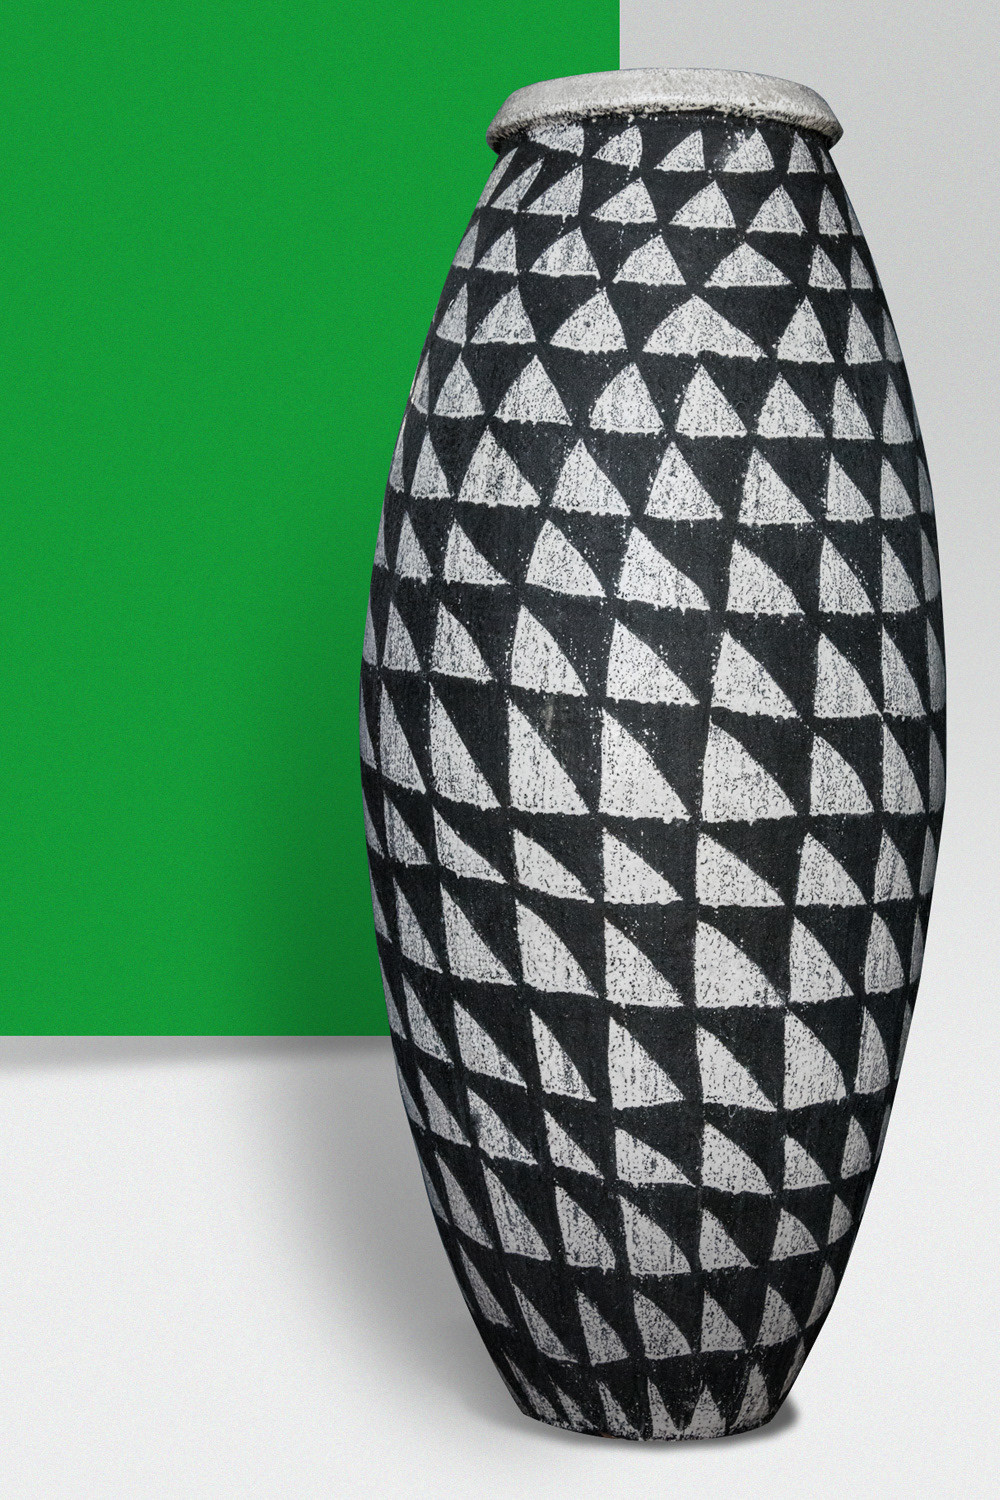 black white floor vase of muse modern burkina floor vase throughout burkina floor vase a handmade and gloriously imperfect graphic pattern draws the eye in and the heart out 55h x 24 5od